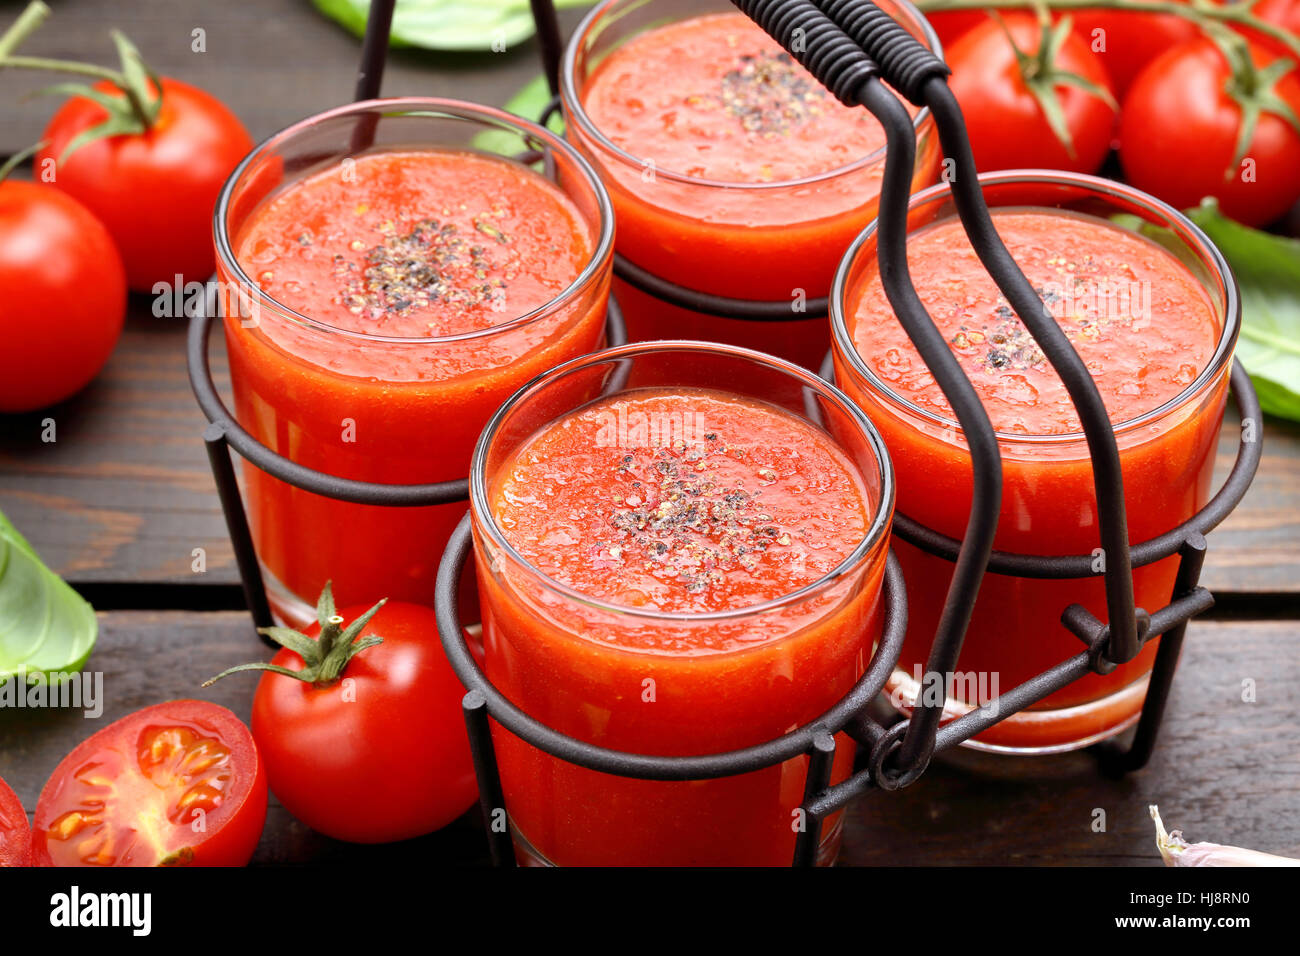 Fresh healthy tomato smoothie juice in metal container on wooden background Stock Photo